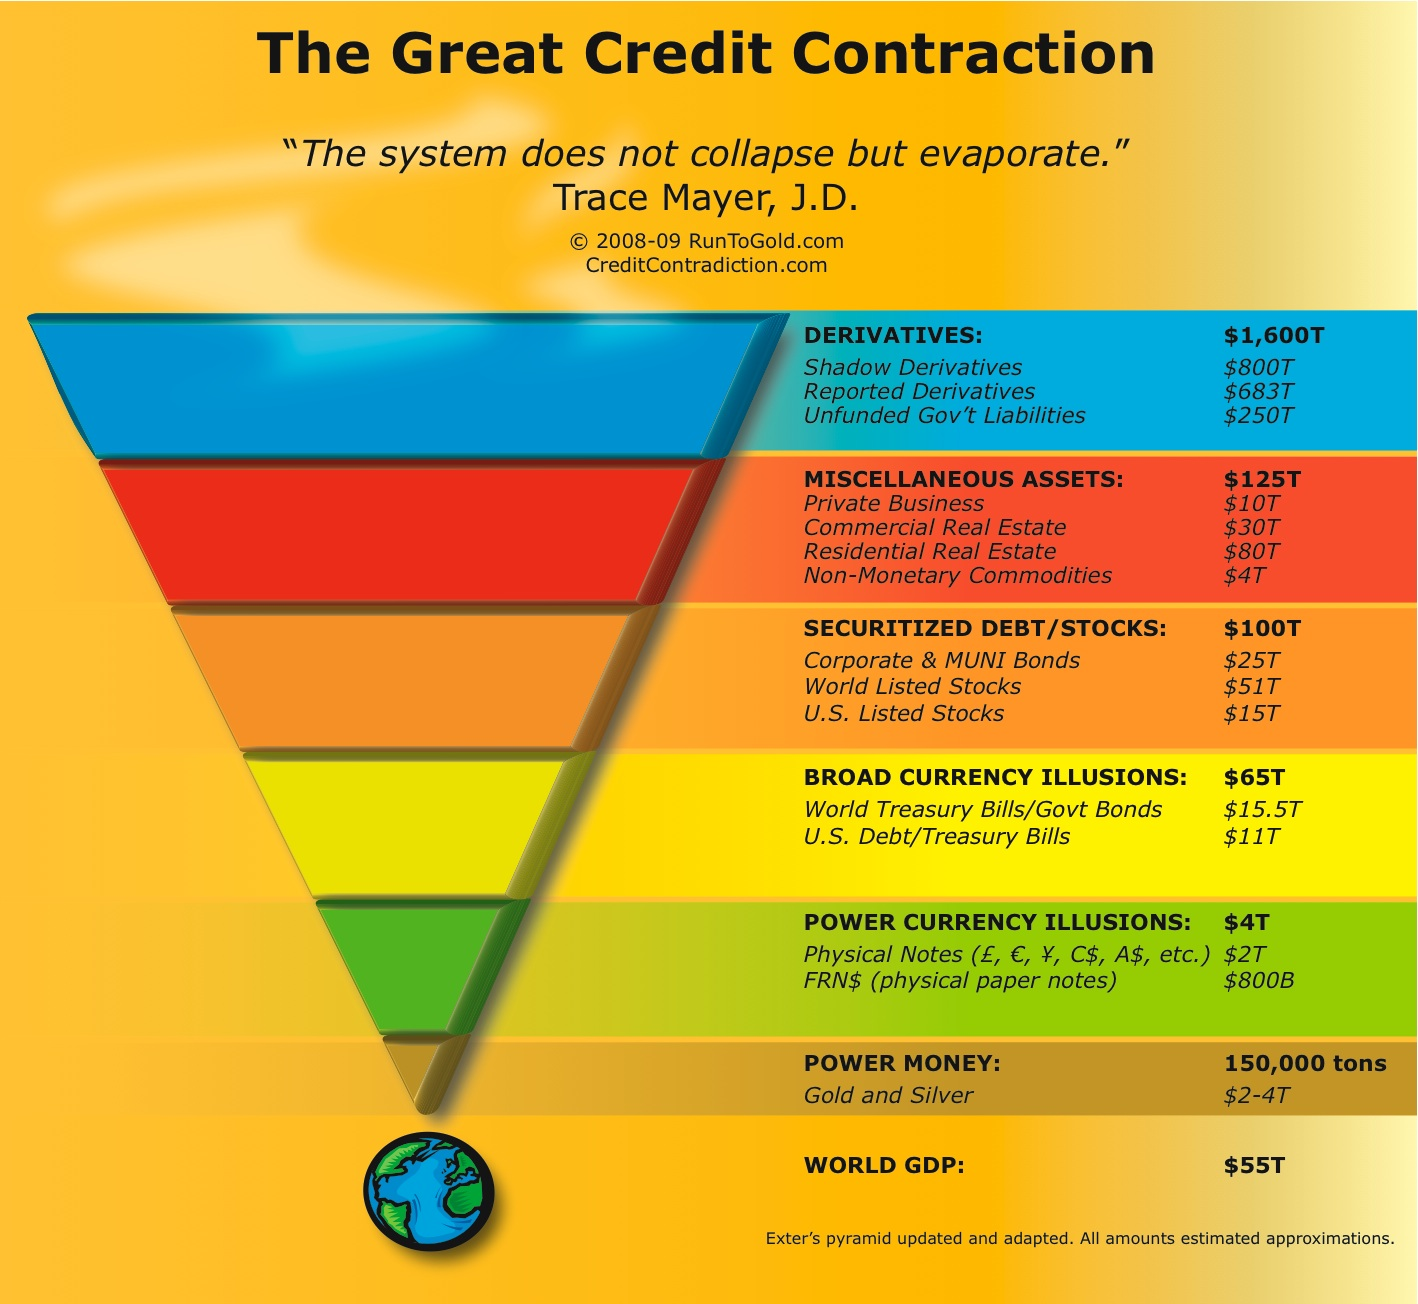 https://i1.wp.com/www.creditcontraction.com/images/affiliate/Great-Credit-Contraction-Liquidity-Pyramid-Large.jpg